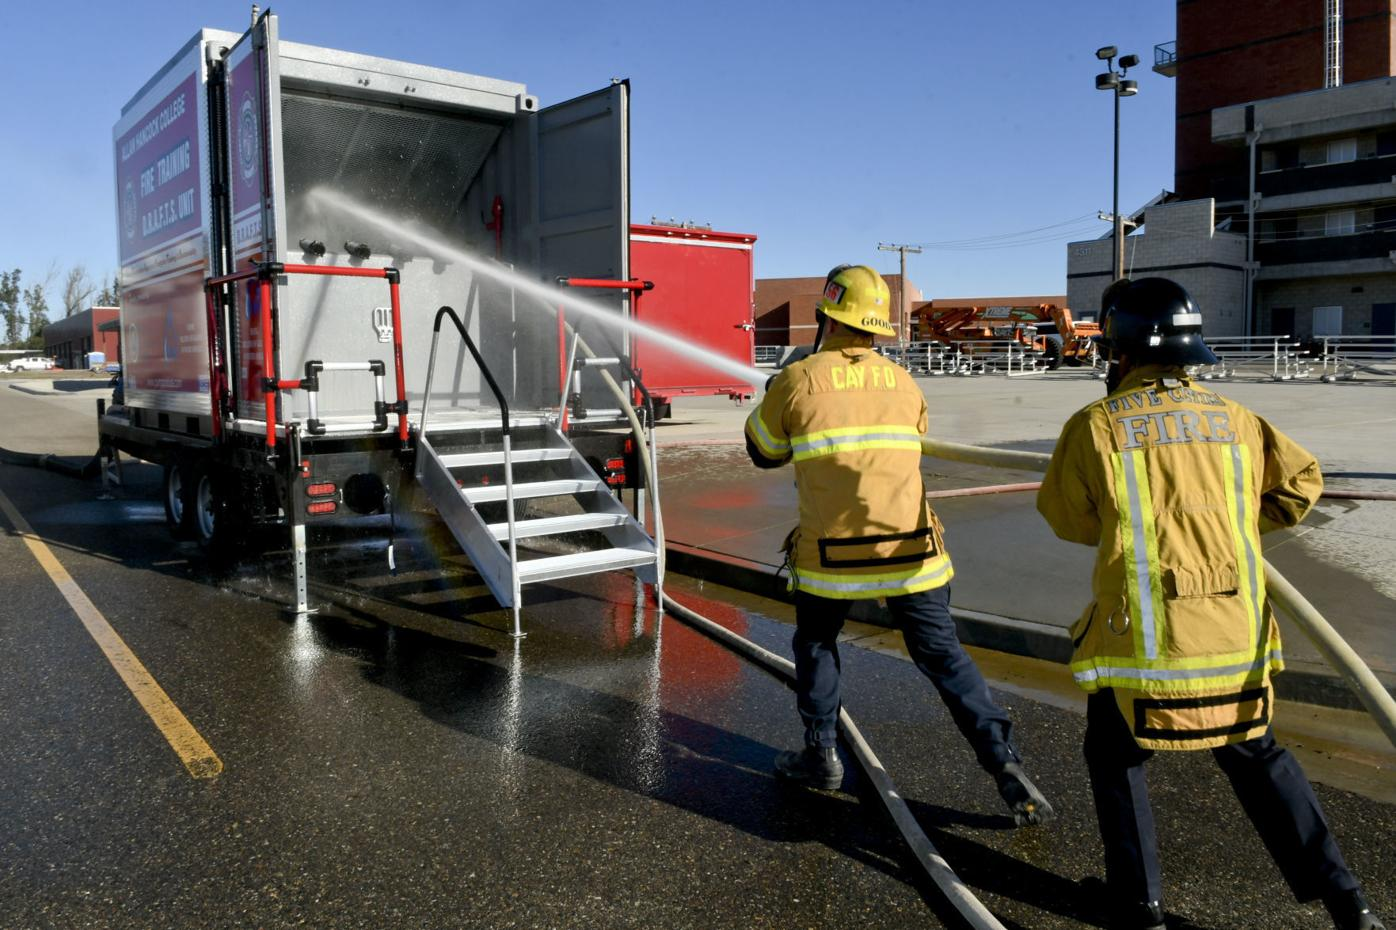 Water wise: New equipment at Hancock College fire academy expected to save millions of gallons